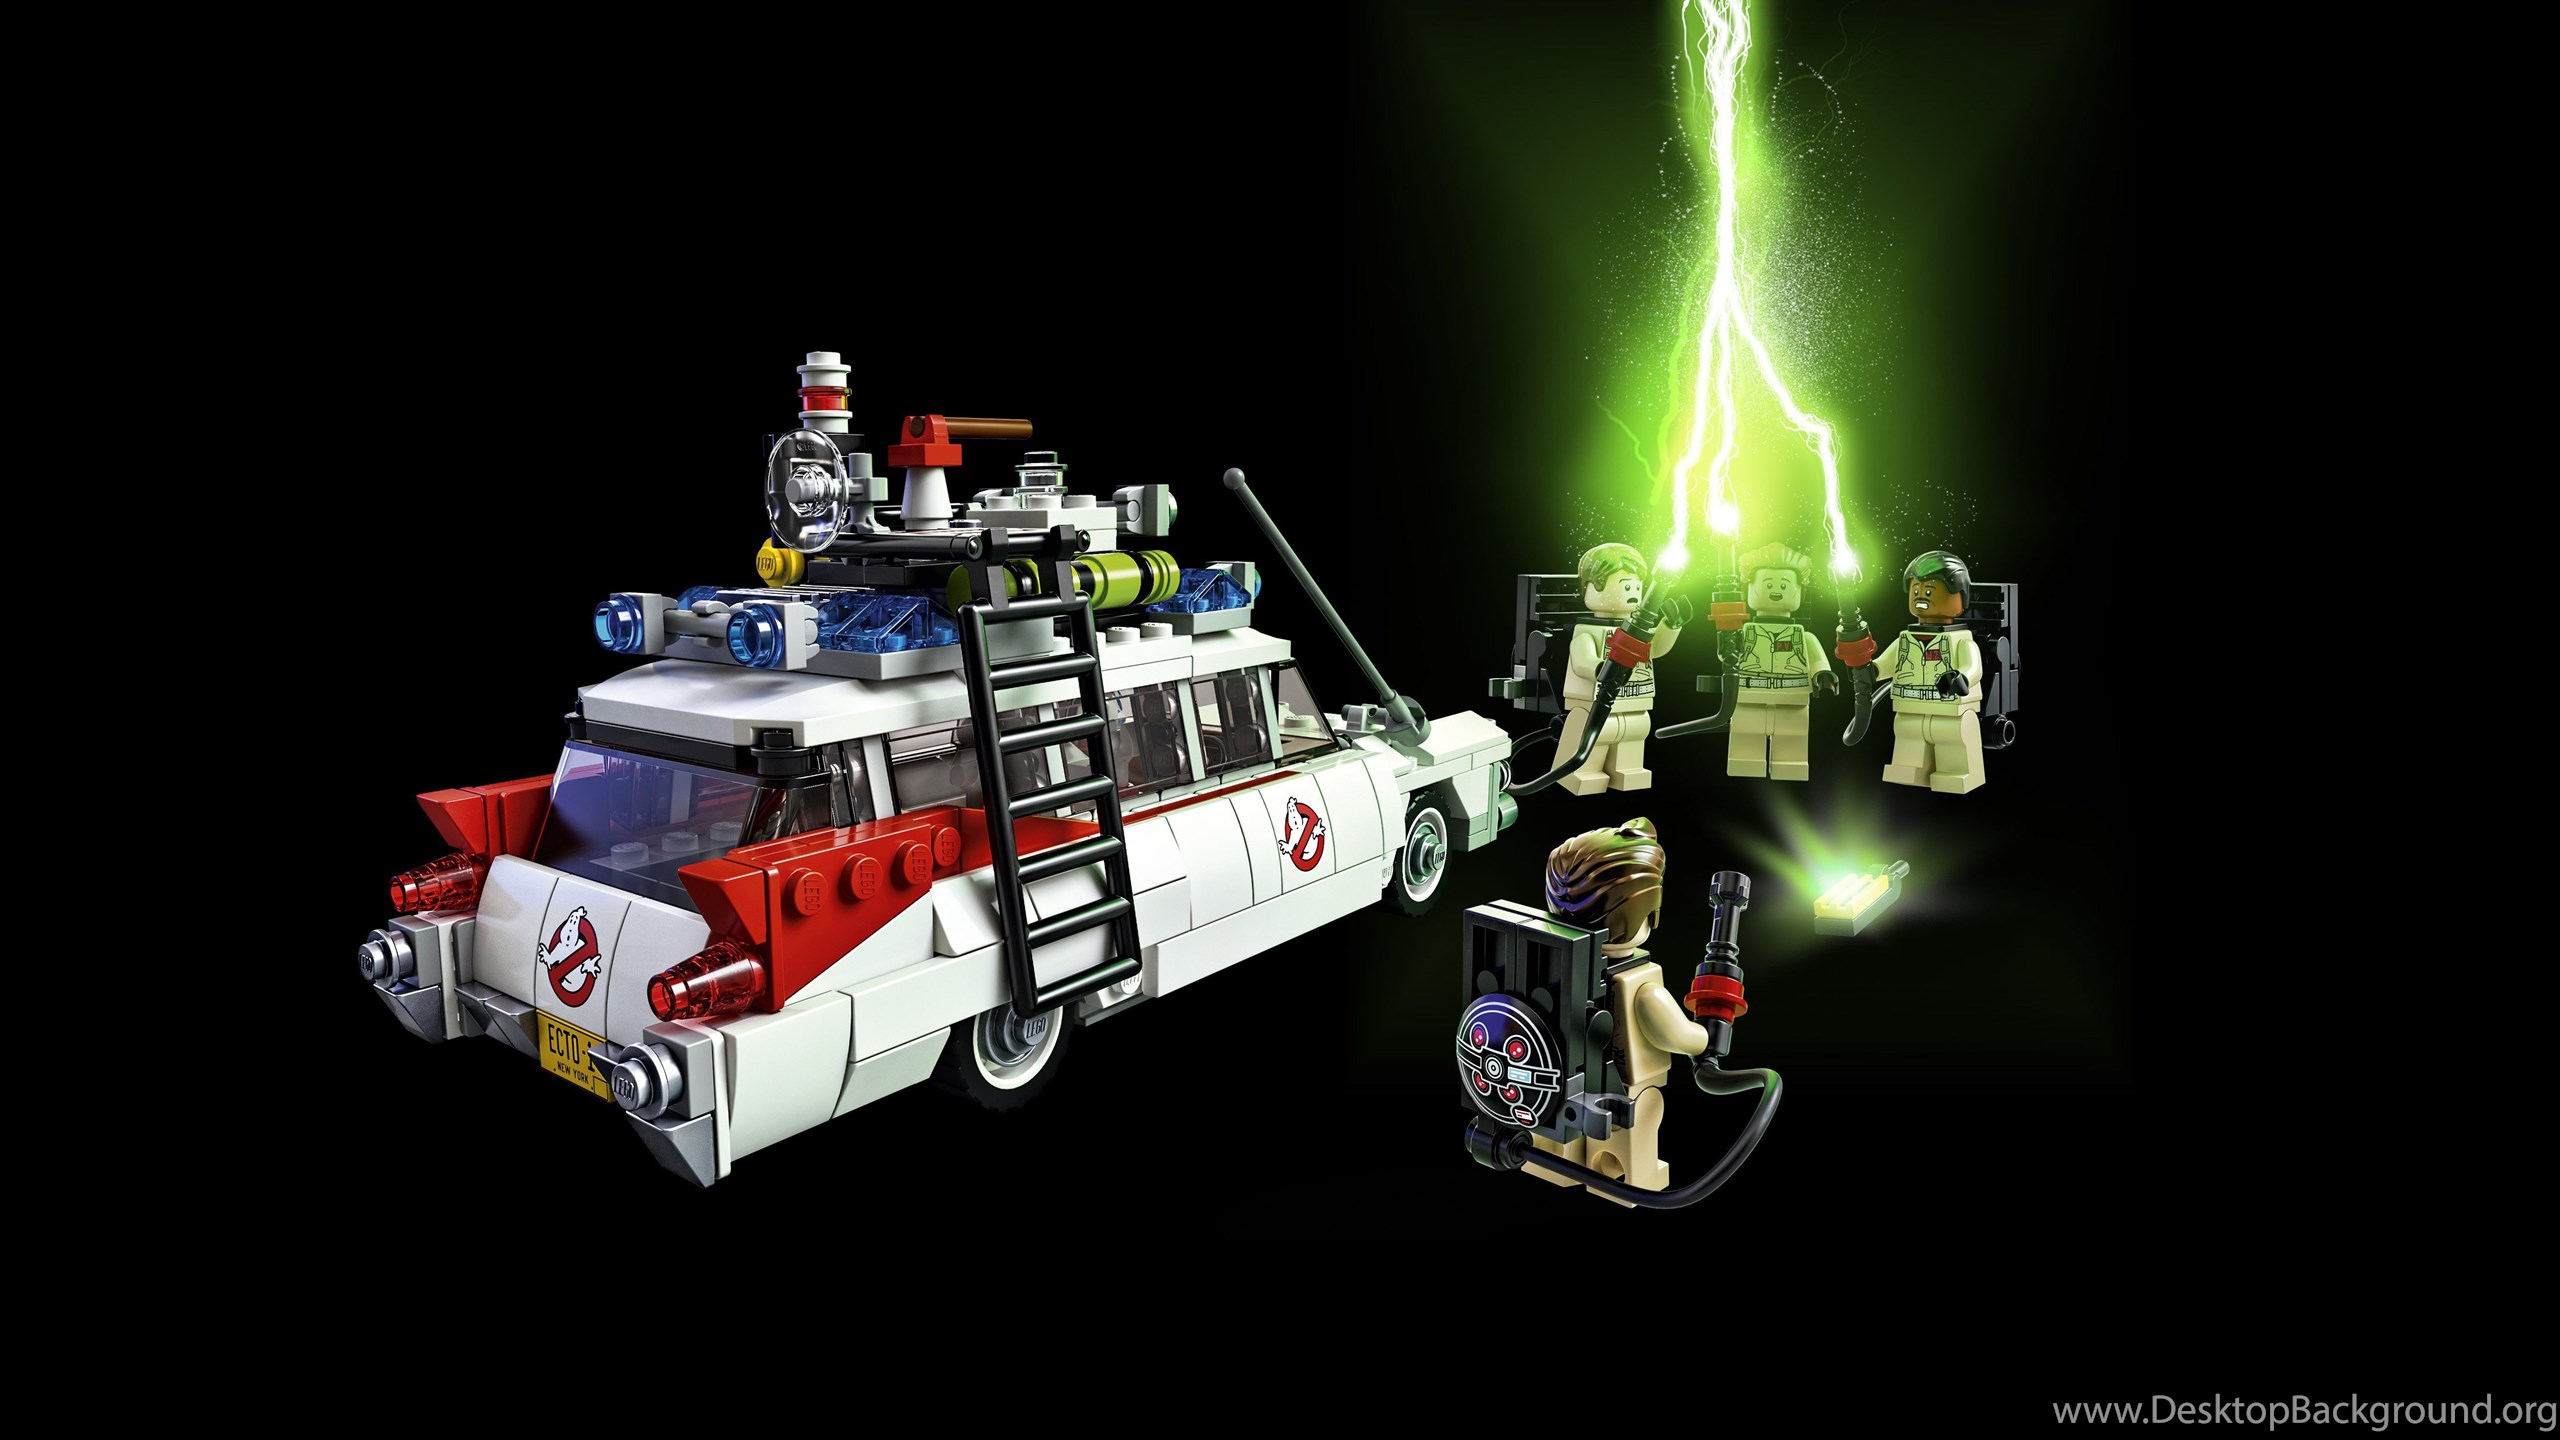 download ghostbusters wallpapers desktop desktop background